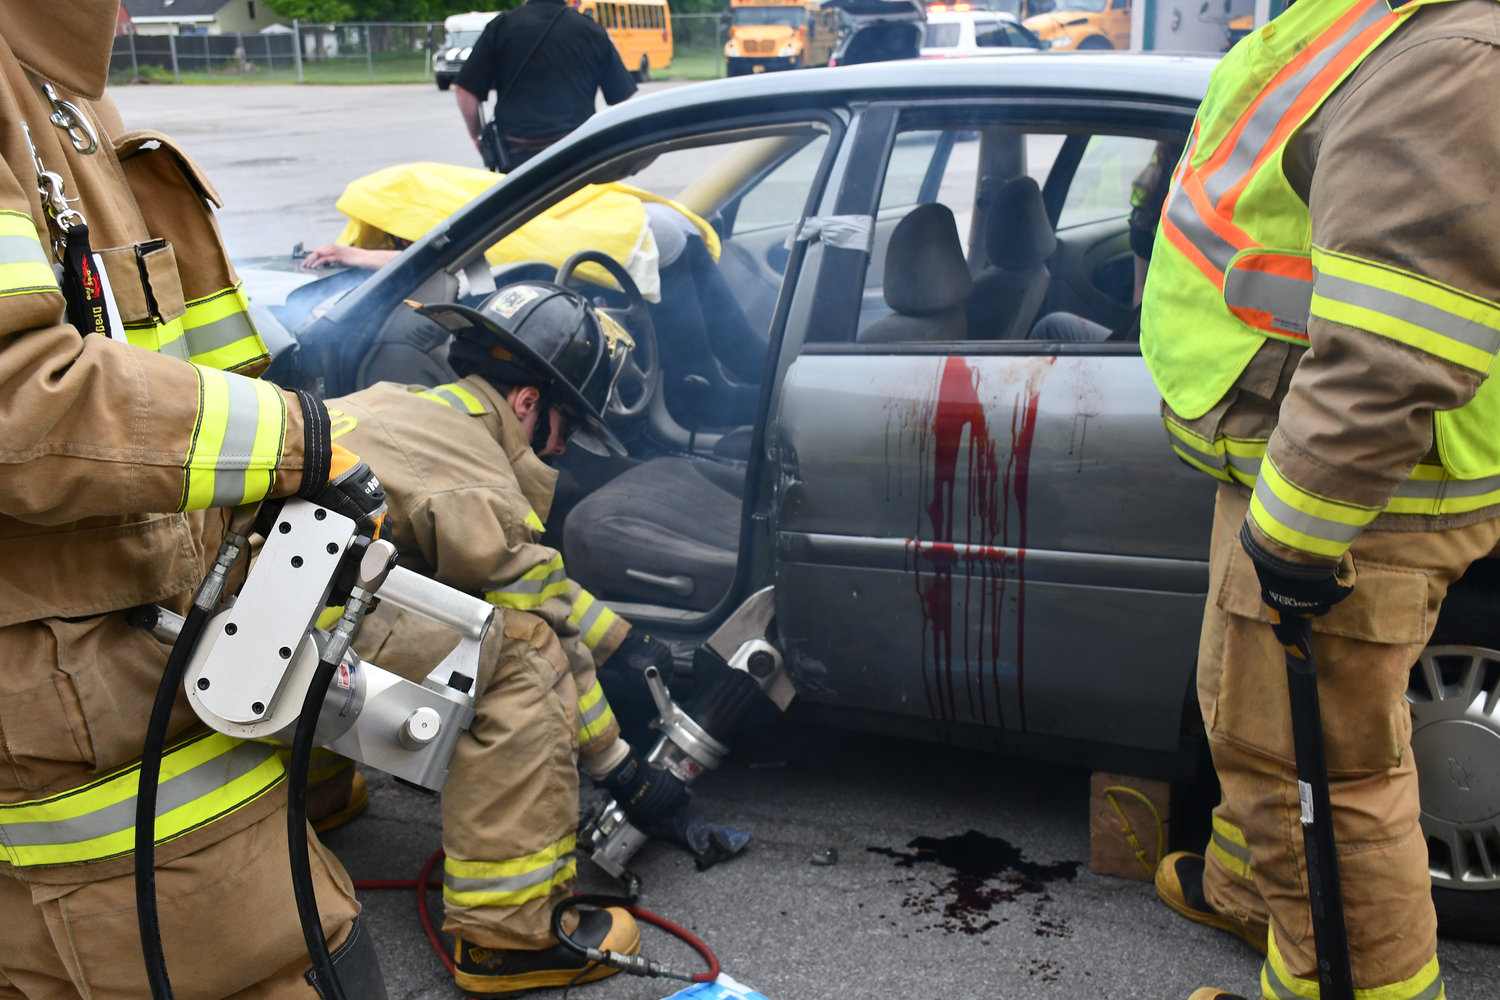 JAWS OF LIFE — Firefighters use hydraulic rescue tools to remove the driver's side rear door and extract a mock accident victim.